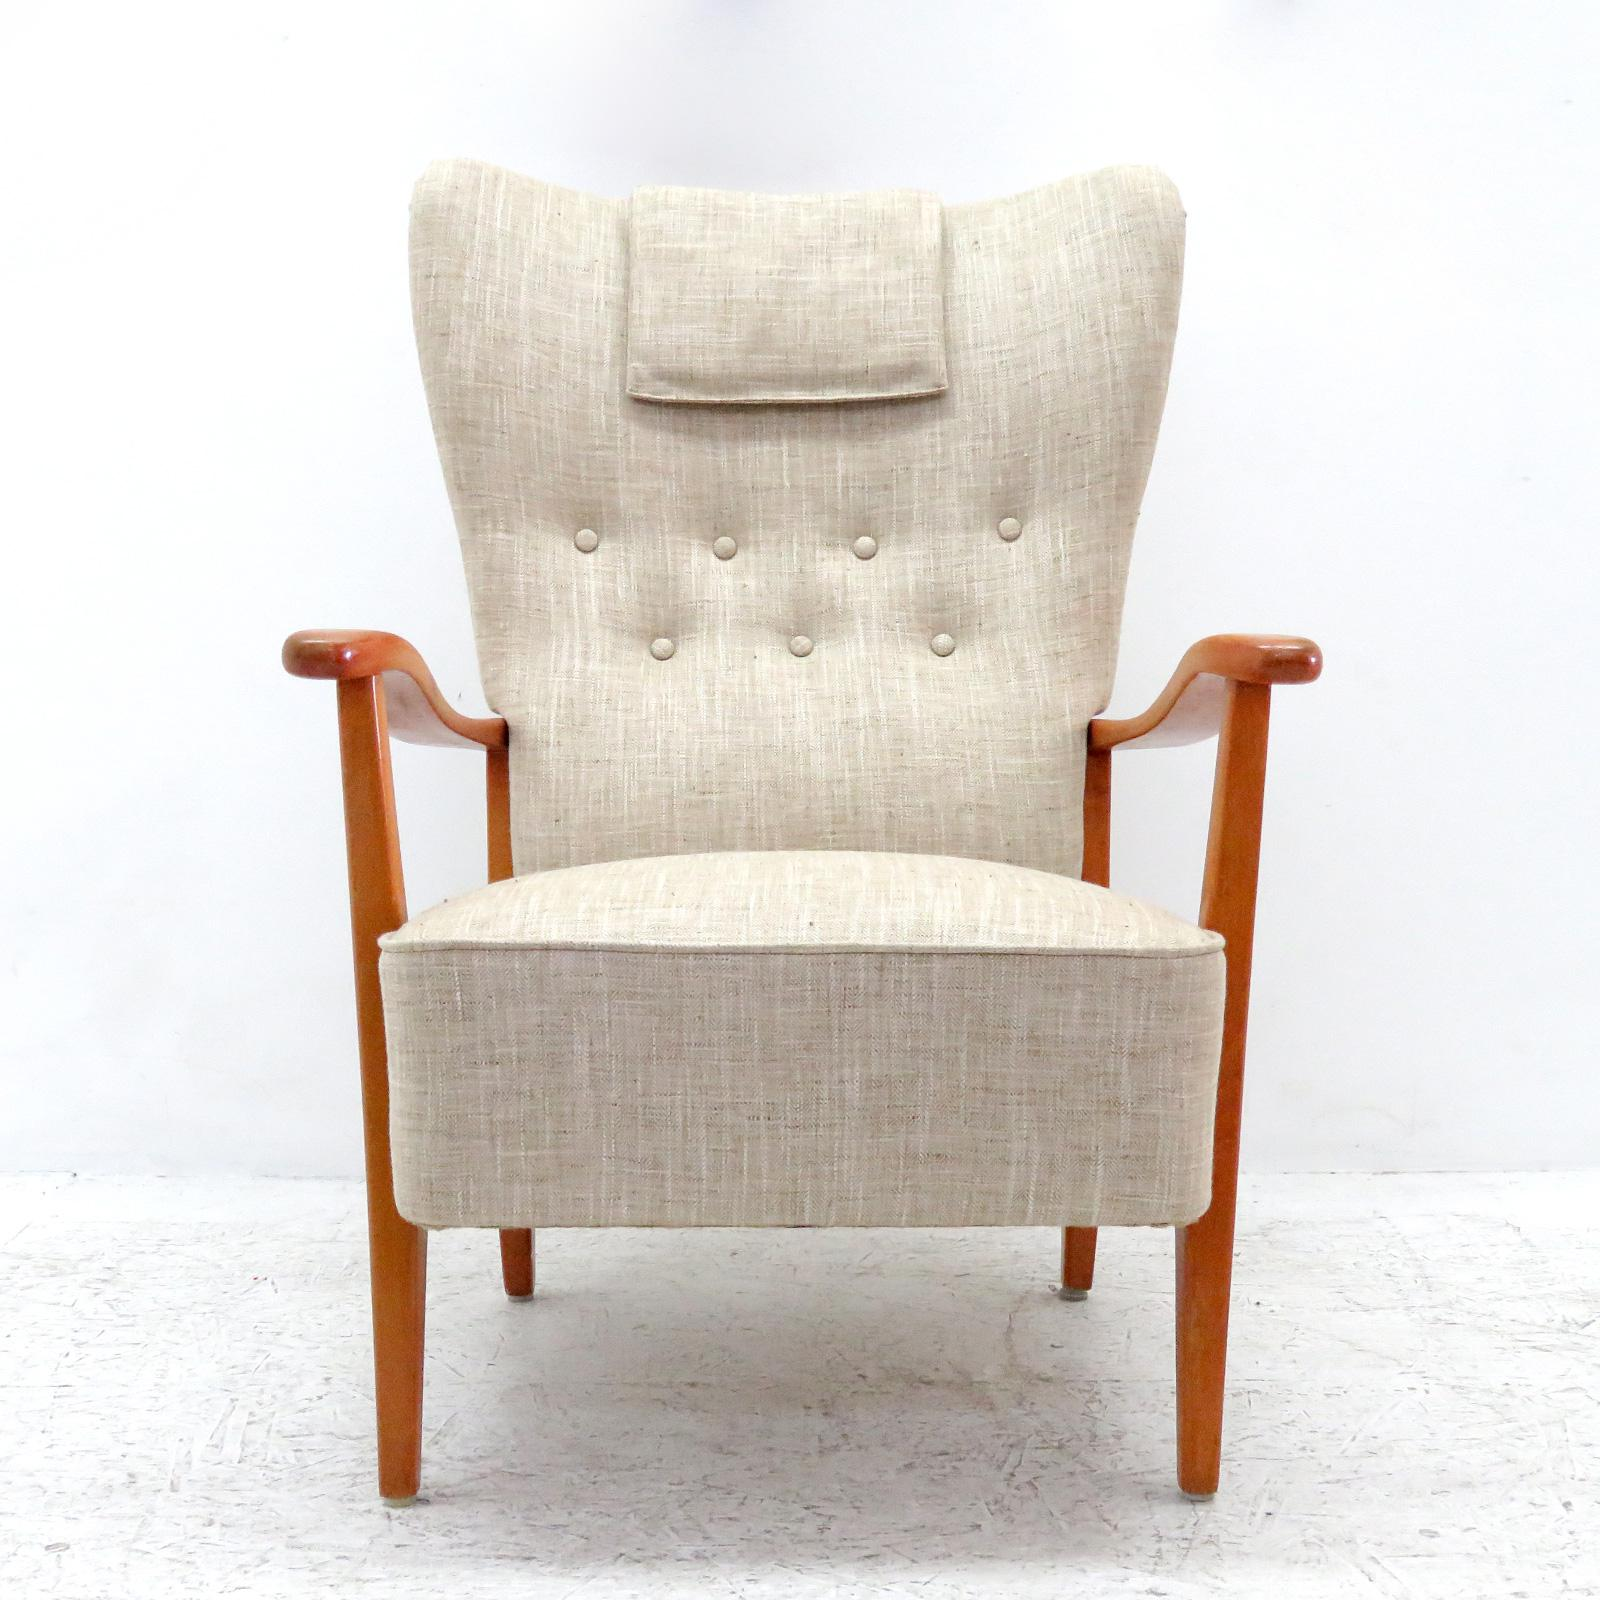 Wonderful Danish Modern High Back Chair By DUX, 1940, Sculptural Stained  Beech Frame With